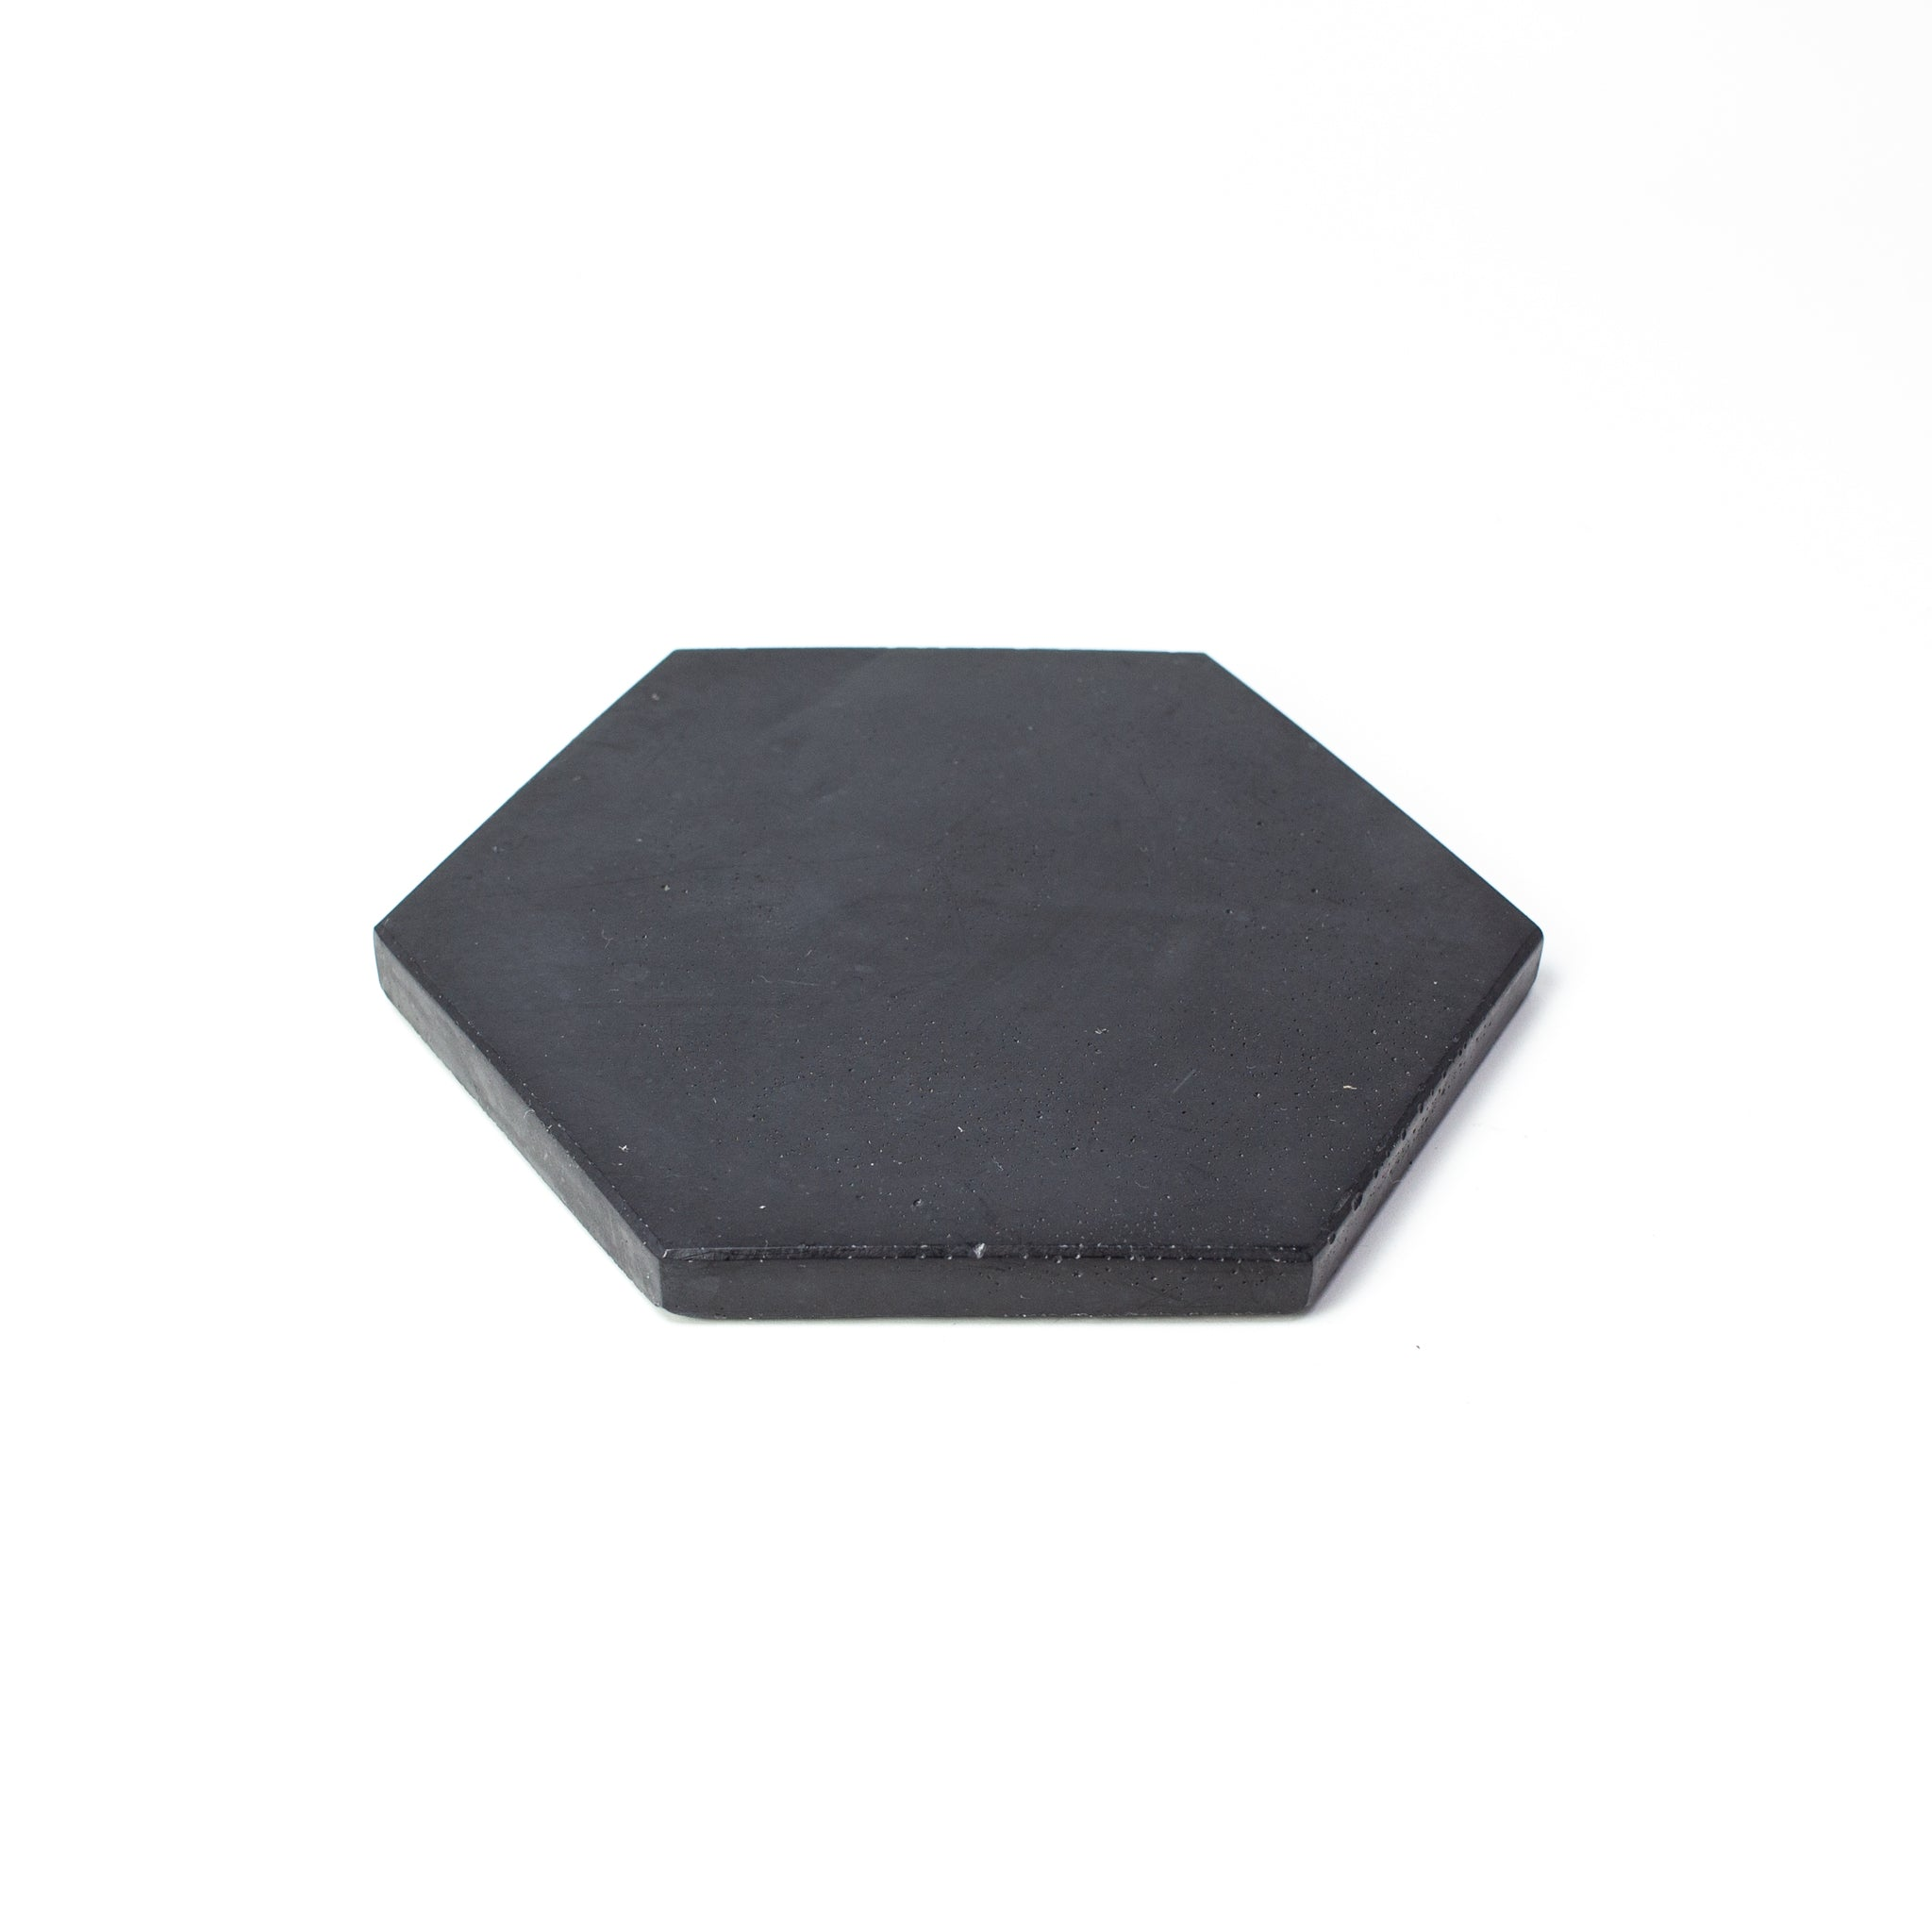 Concrete Hexagon Coaster: Carbon Black